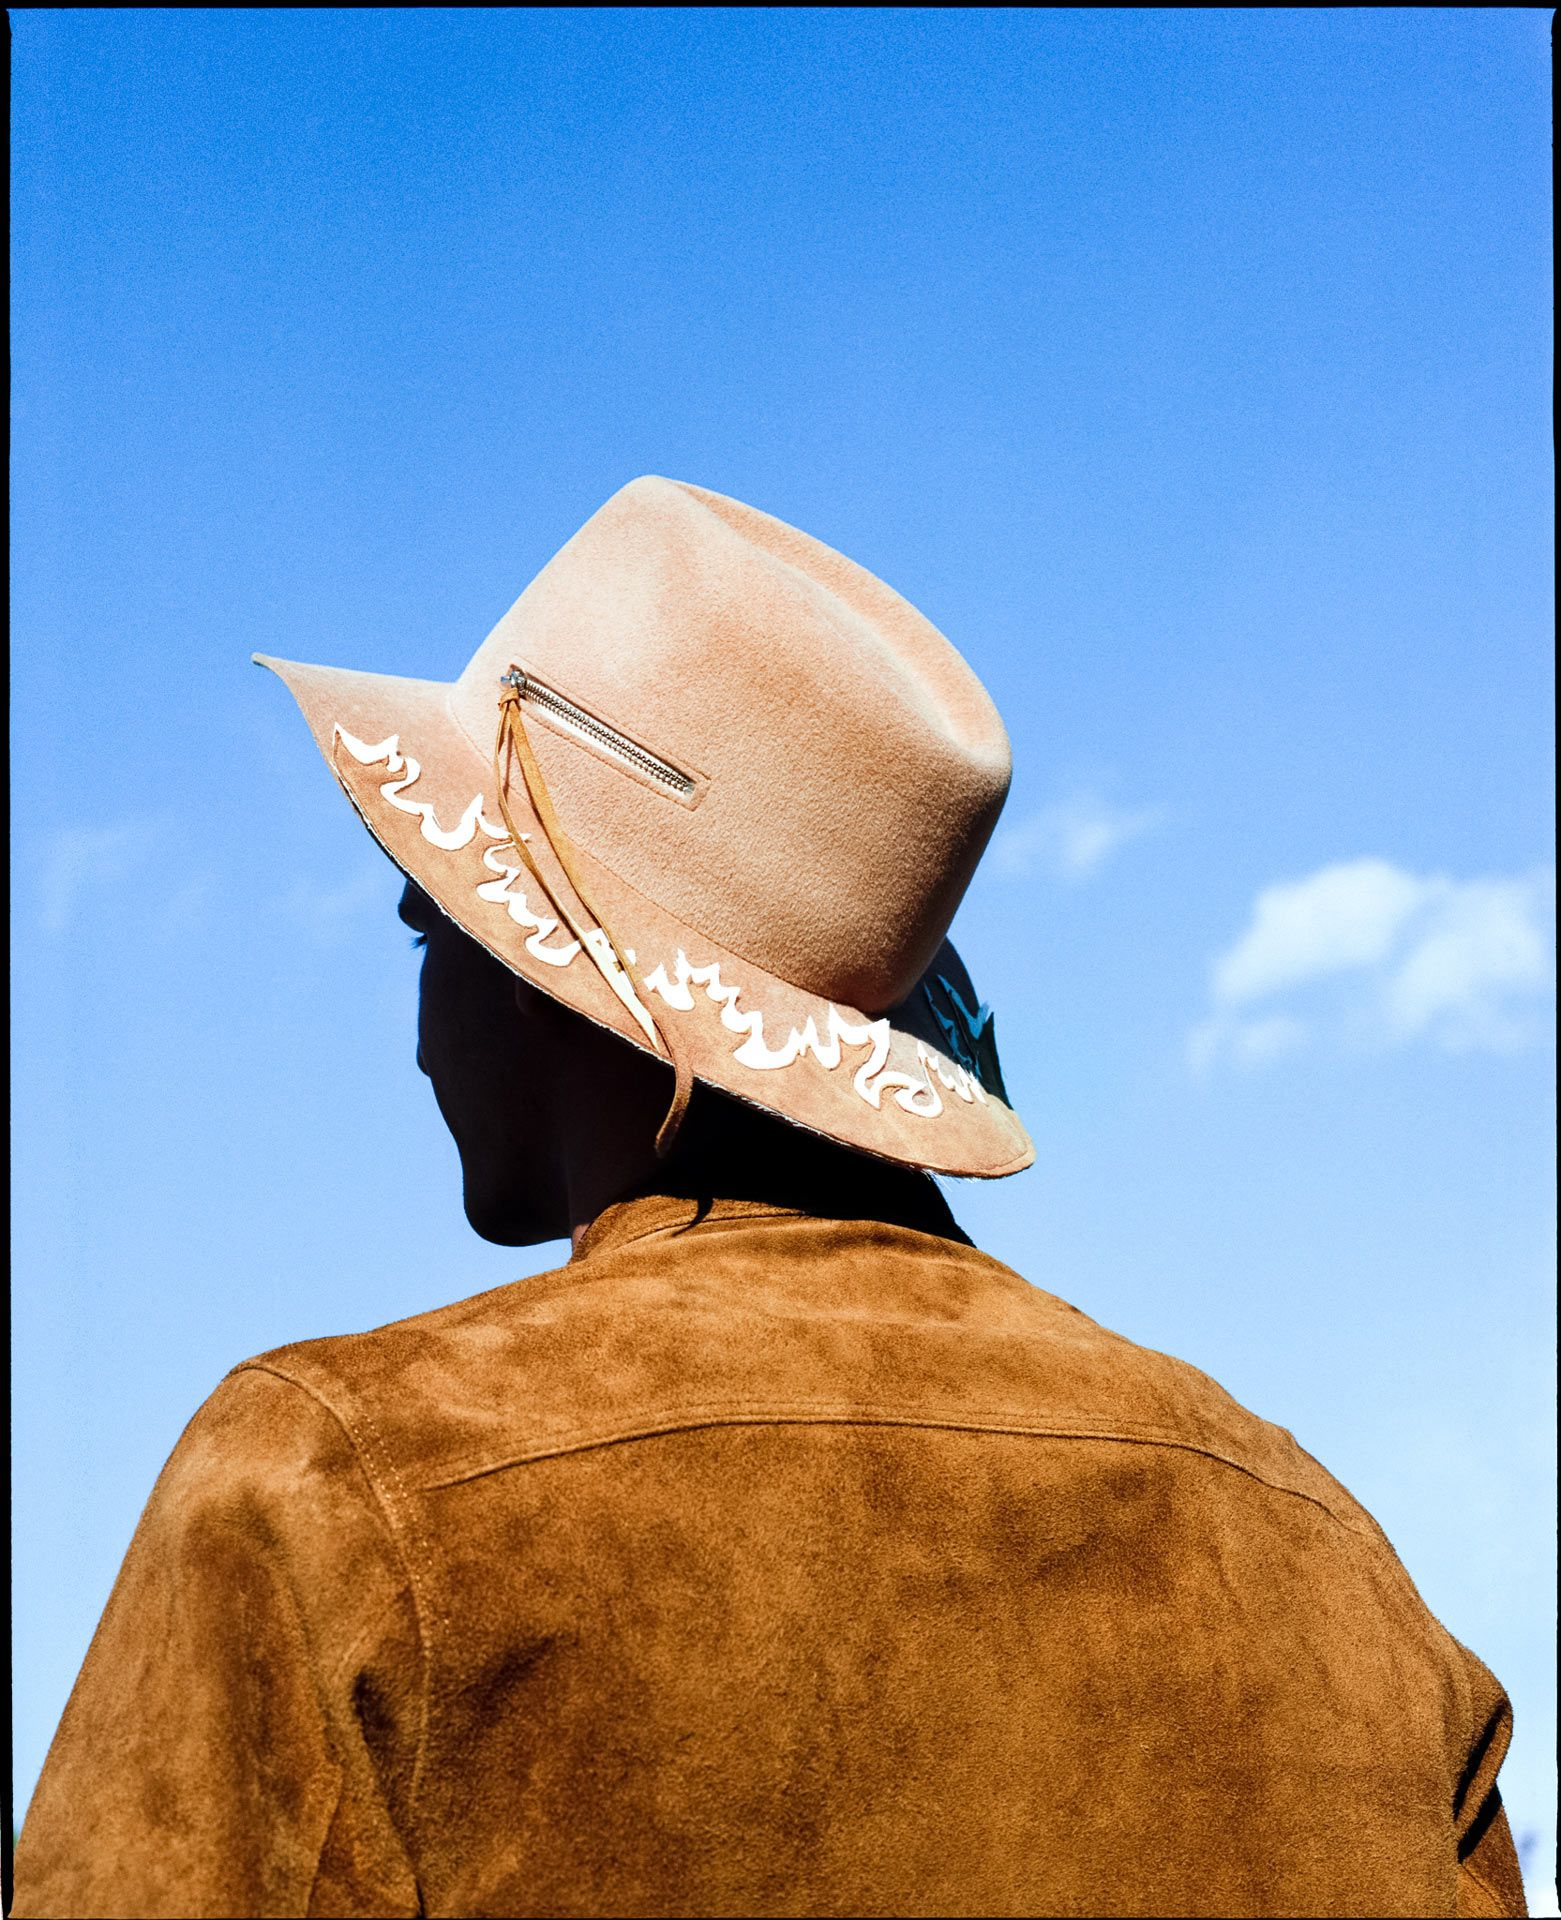 cowboy turned around by Alexi Hobbs for Larose Paris in St-Tite